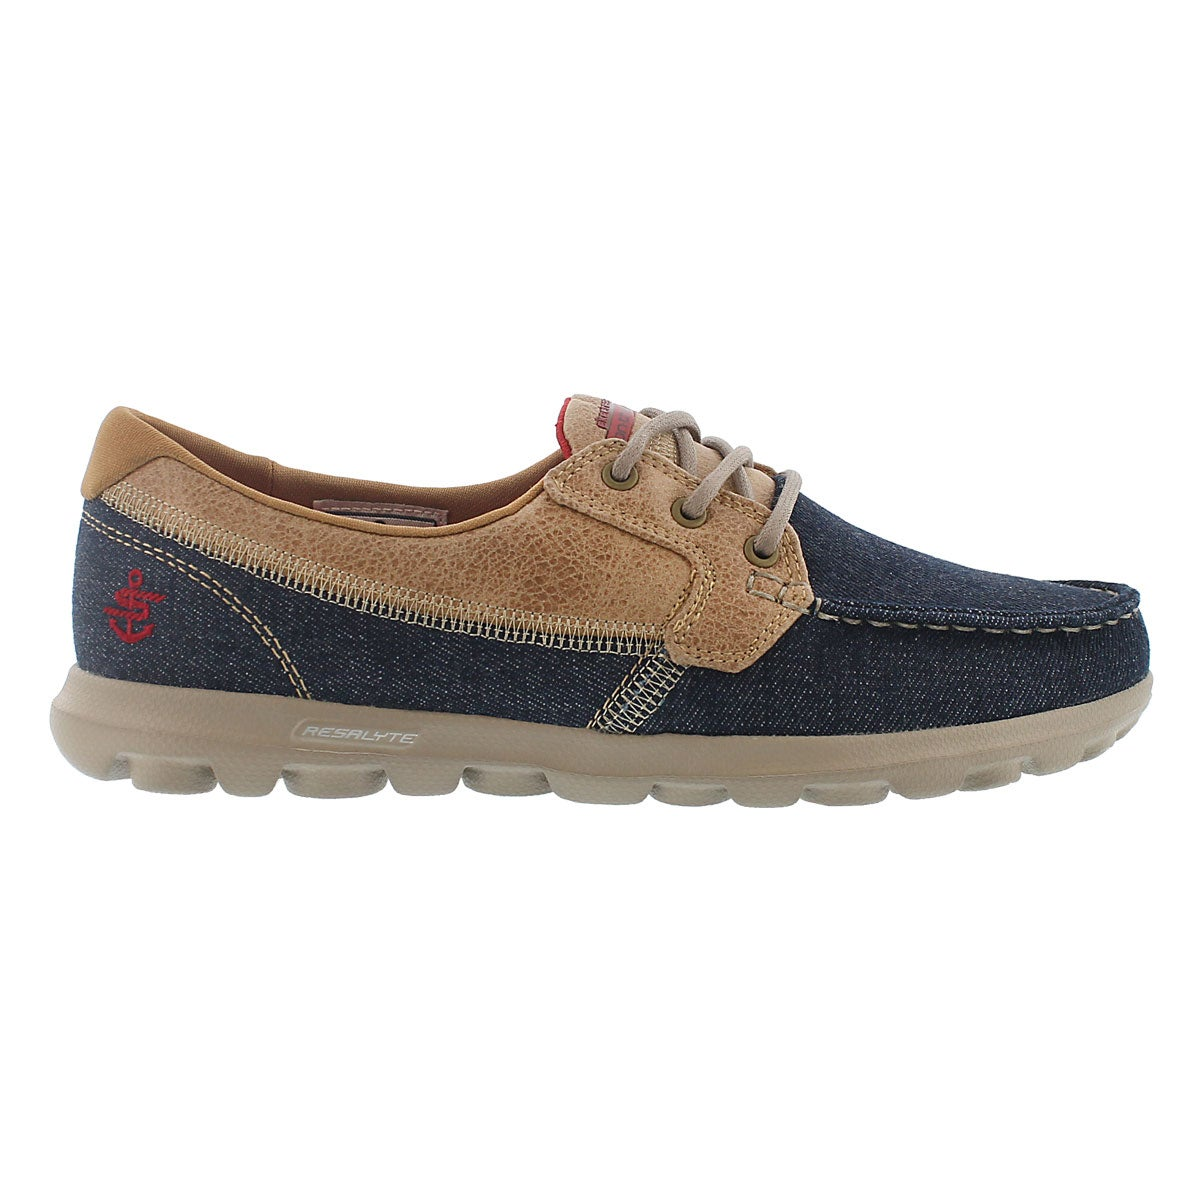 Lds Embark denim/taupe 3 eye boat shoe